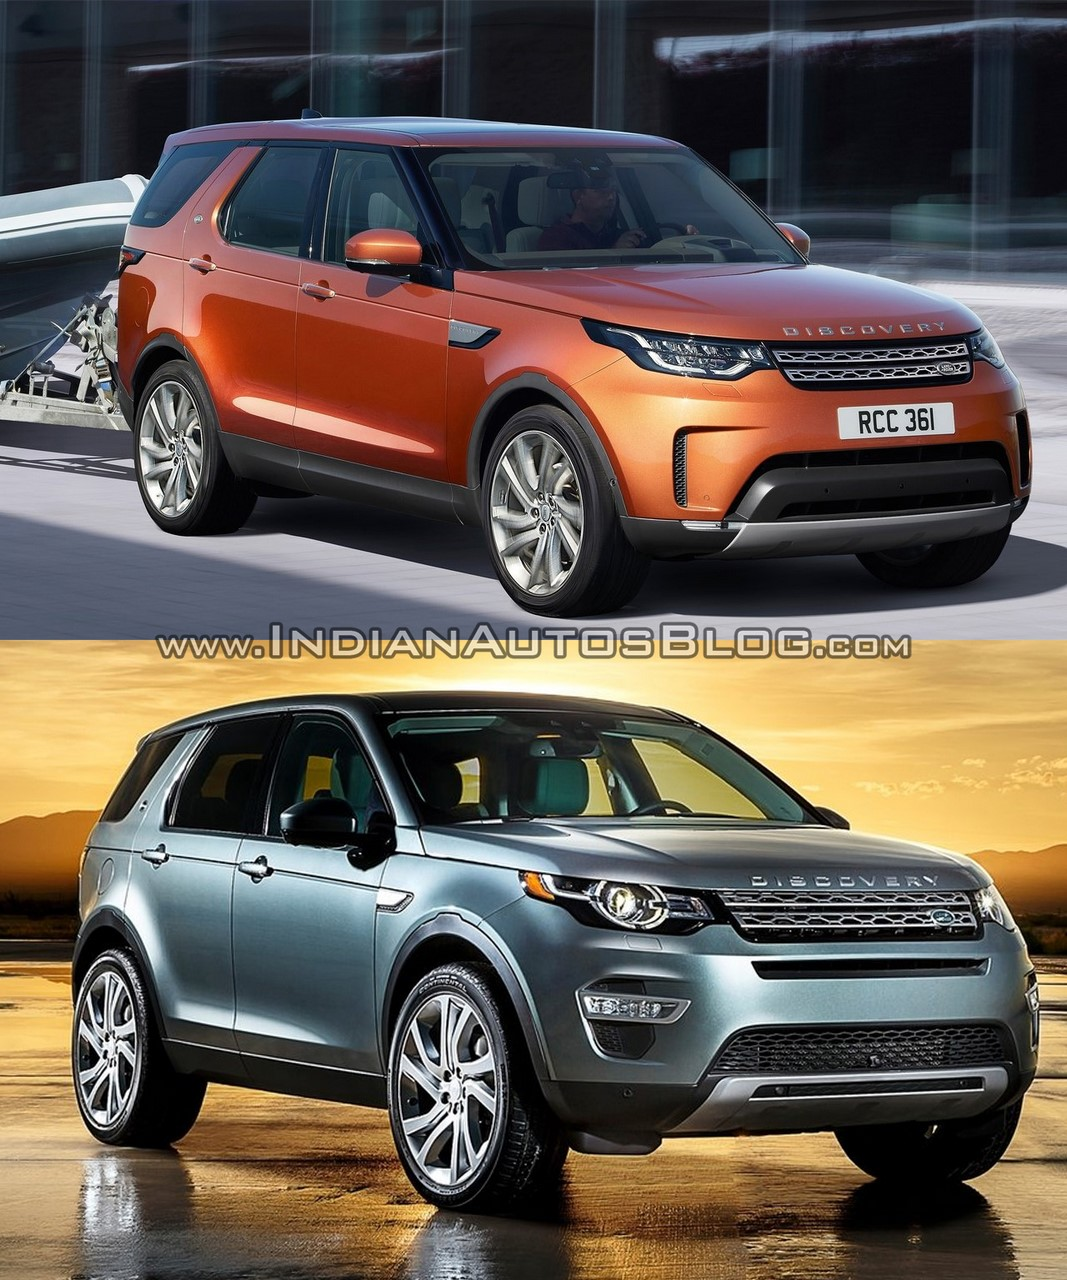 2017 land rover discovery vs land rover discovery sport in images. Black Bedroom Furniture Sets. Home Design Ideas